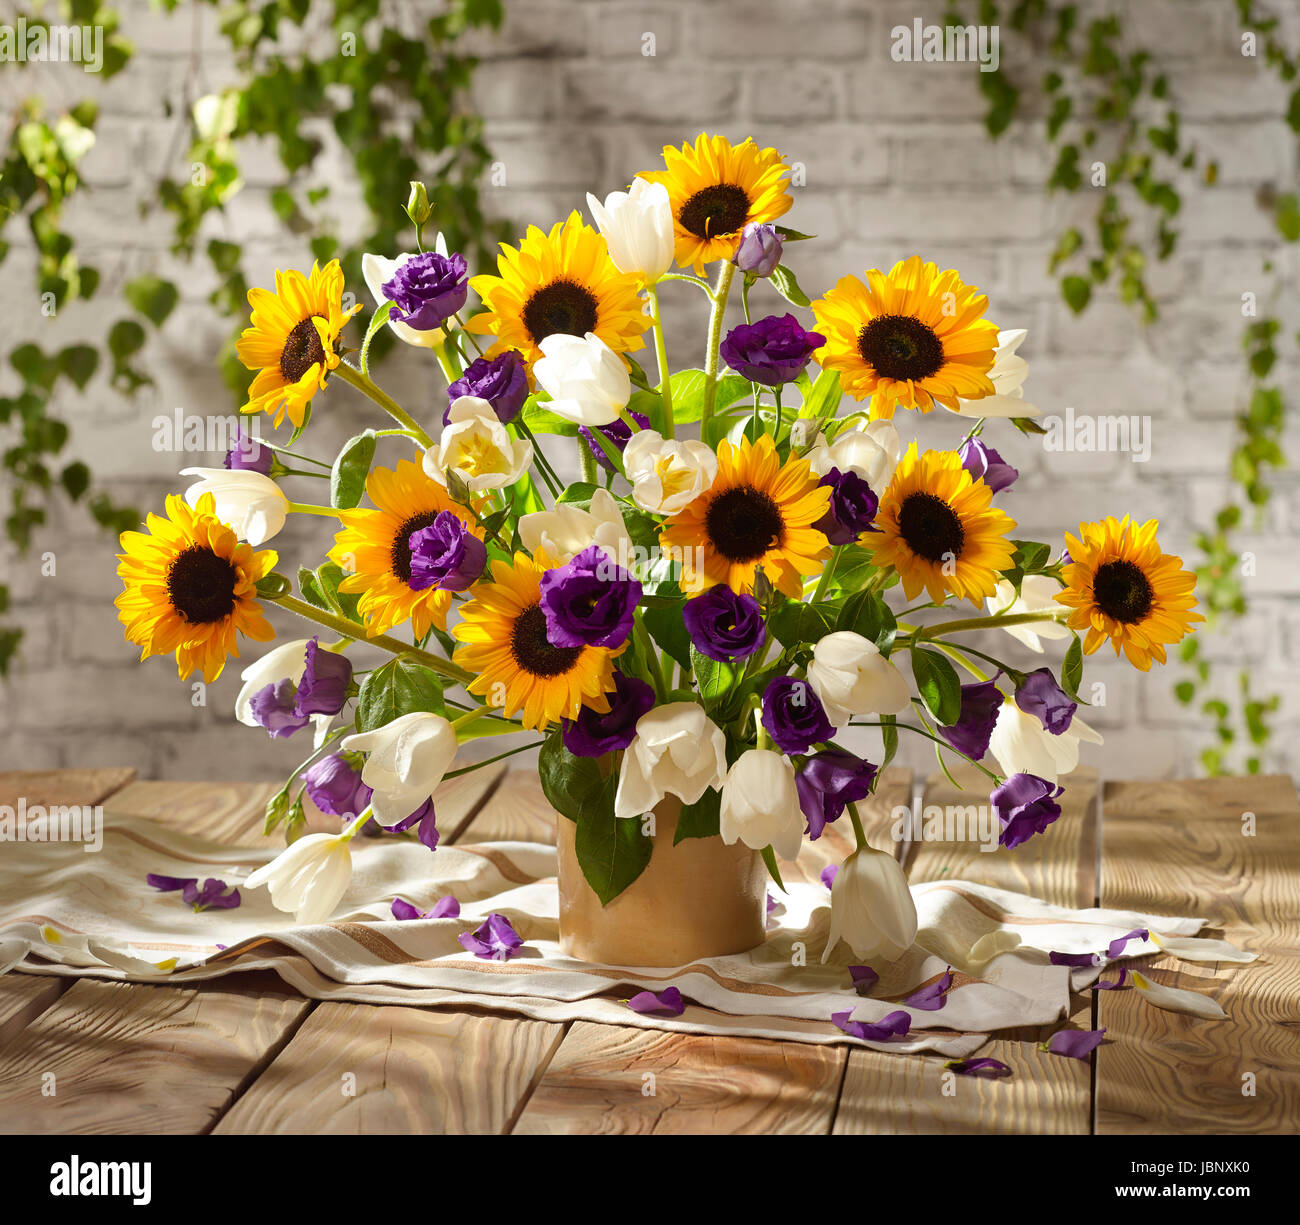 Bouquet Of Flowers With Sunflowers, Tulips And Hibiscus